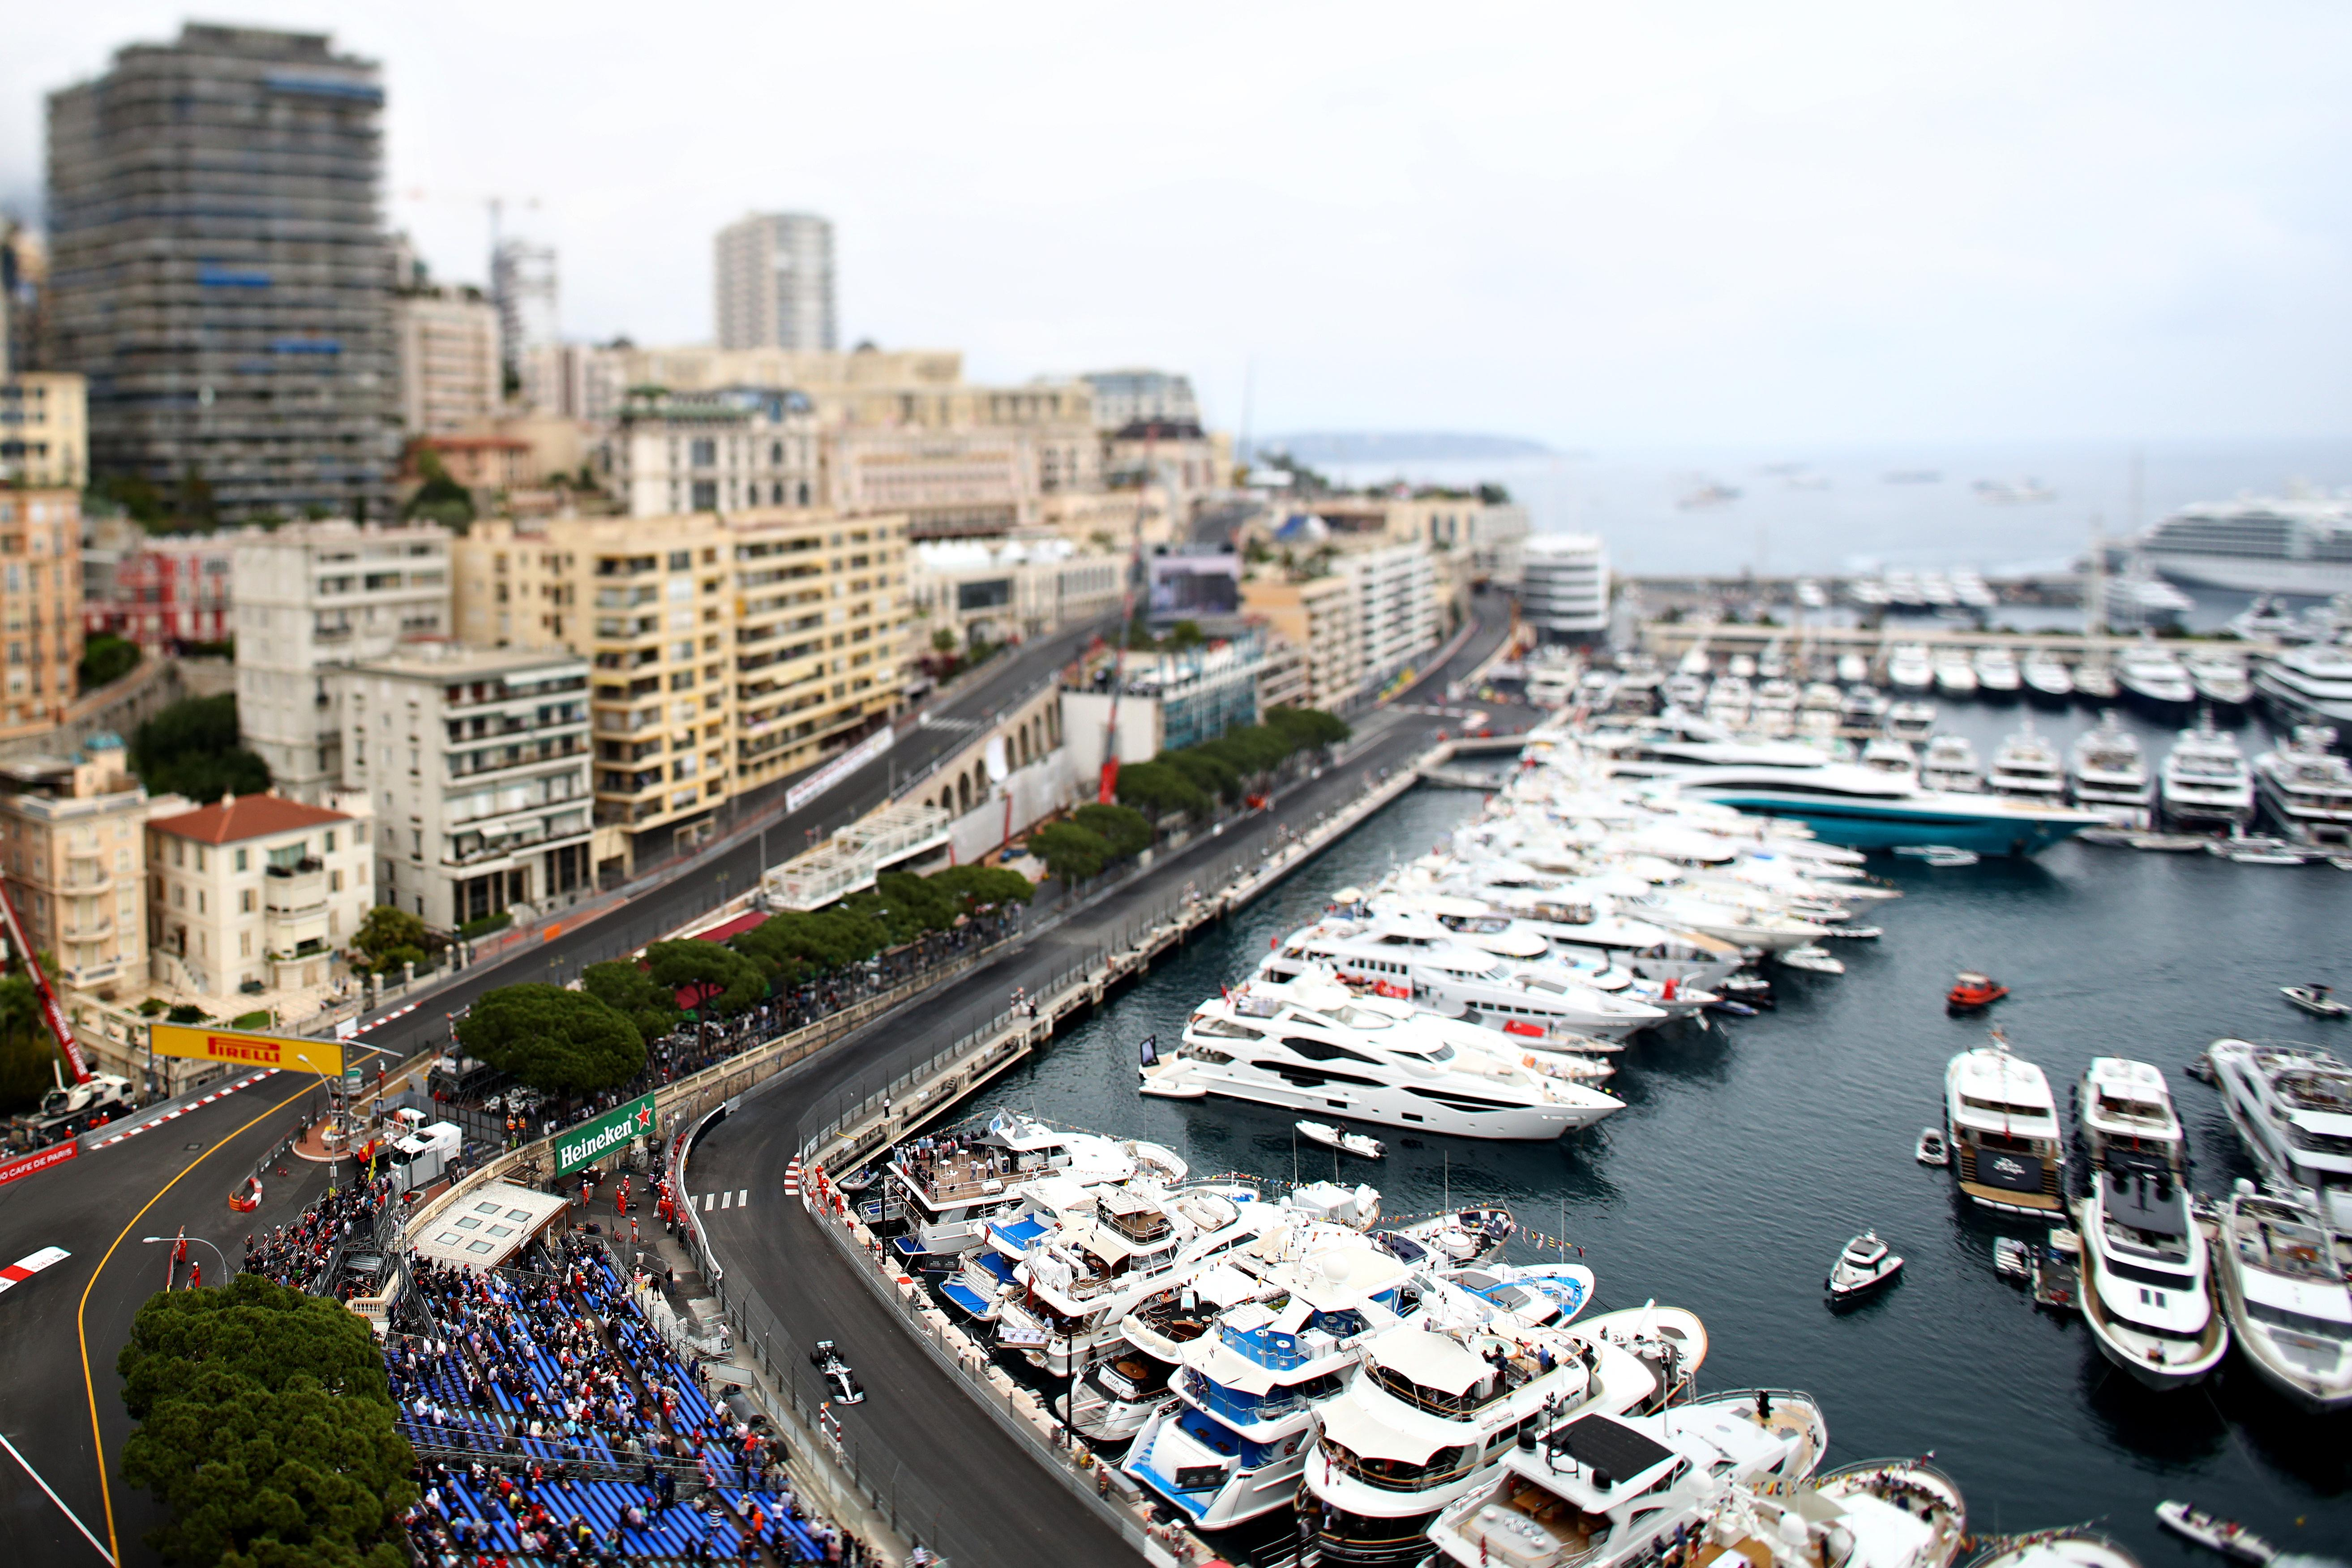 Mercedes as sharp as ever for Monaco despite emotionally difficult week